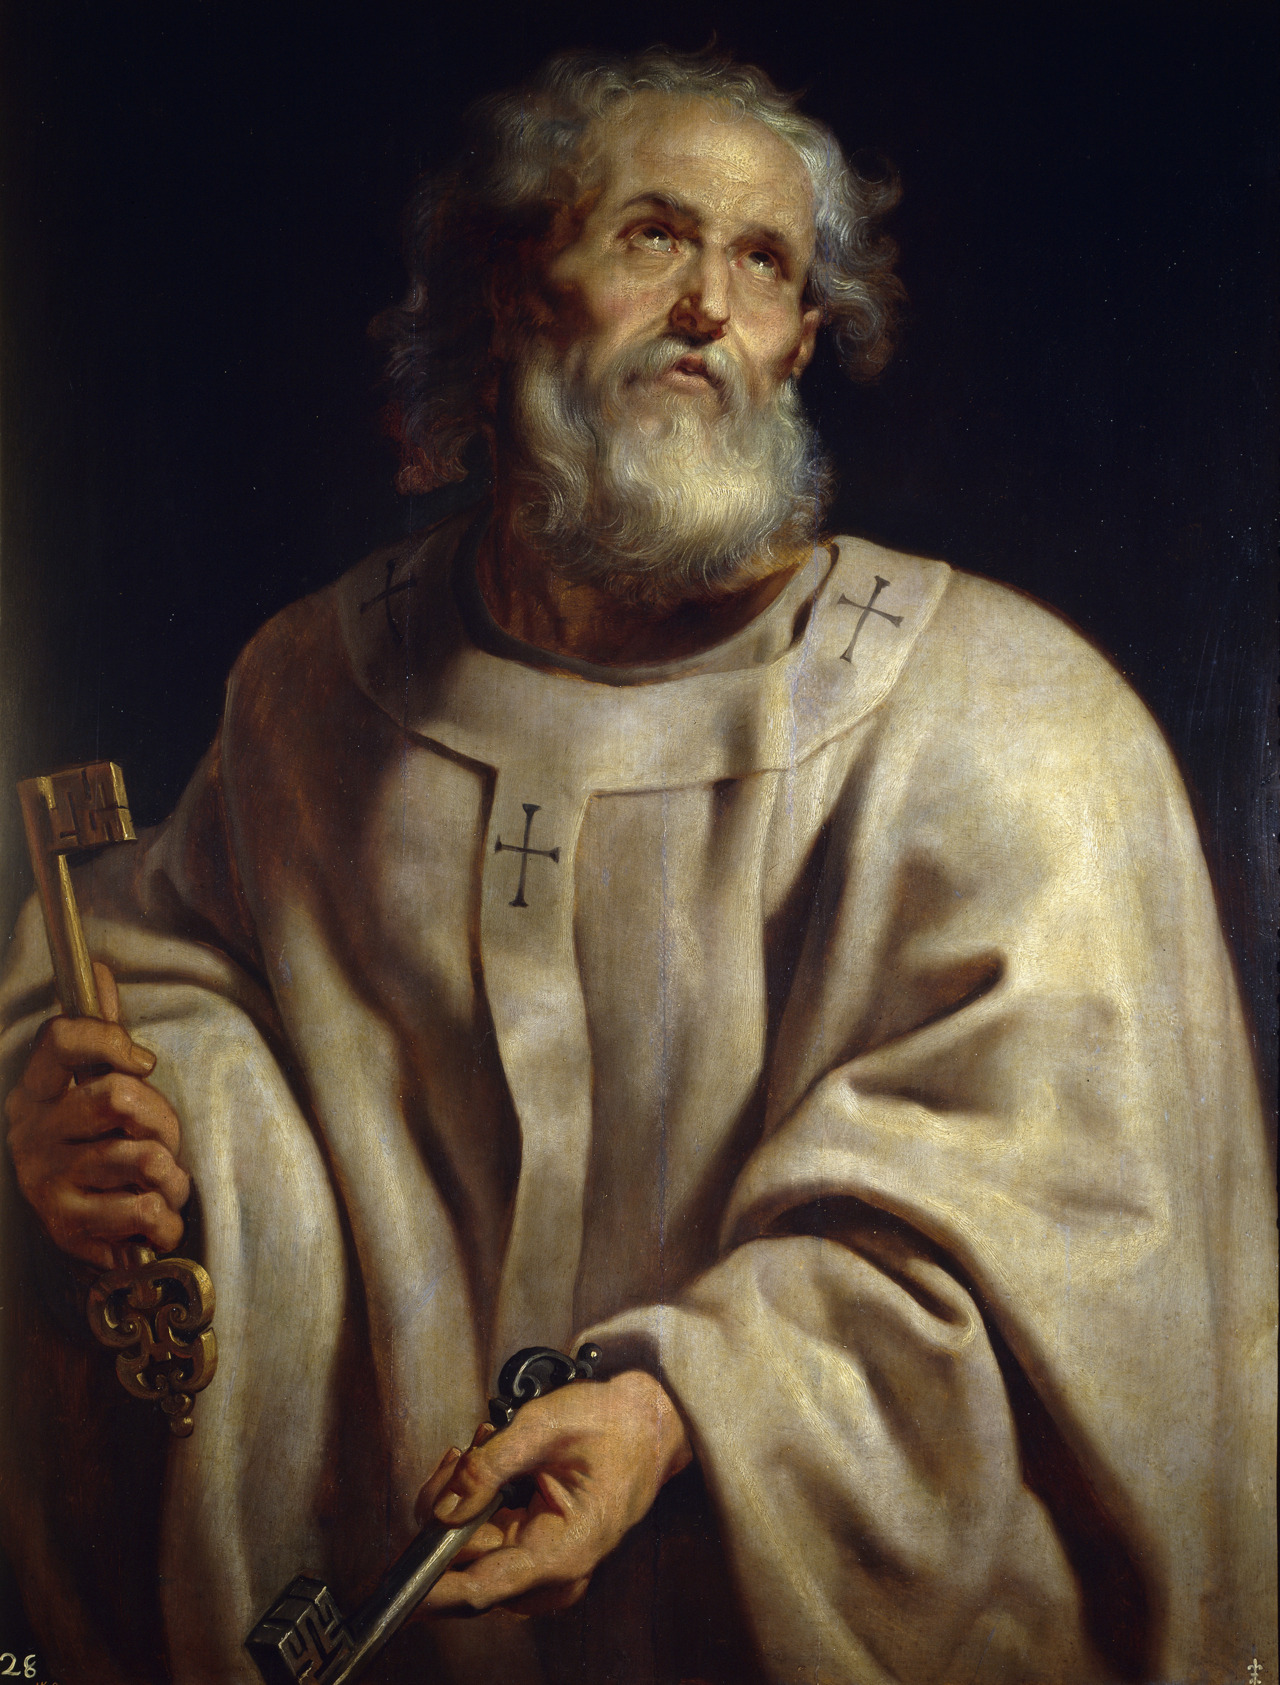 Saint Peter by Peter Paul Rubens